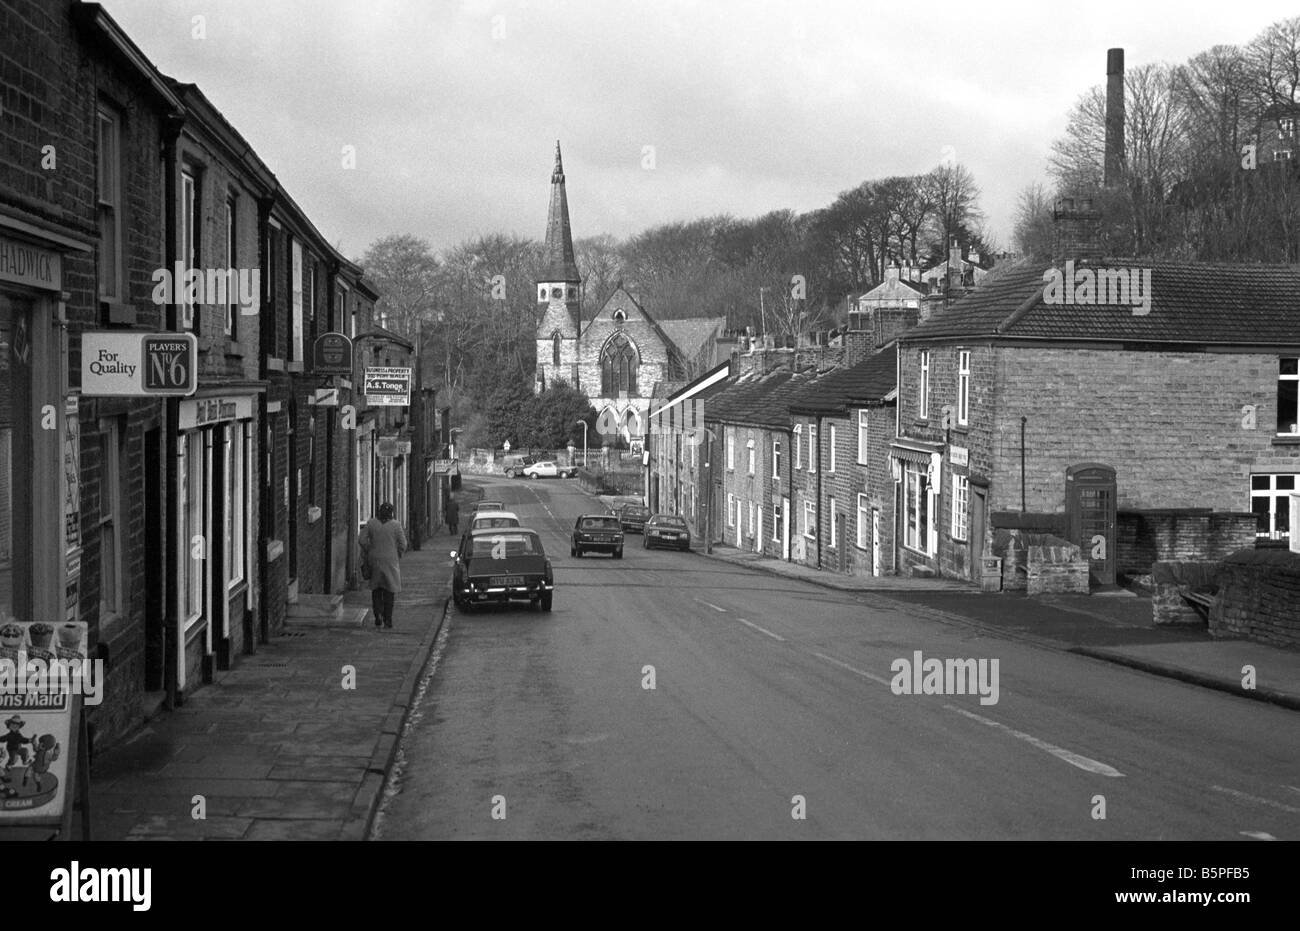 UK Cheshire Bollington Palmerston Street in 1970s seventies 70s K6 phone box in Pool Bank black and white - Stock Image